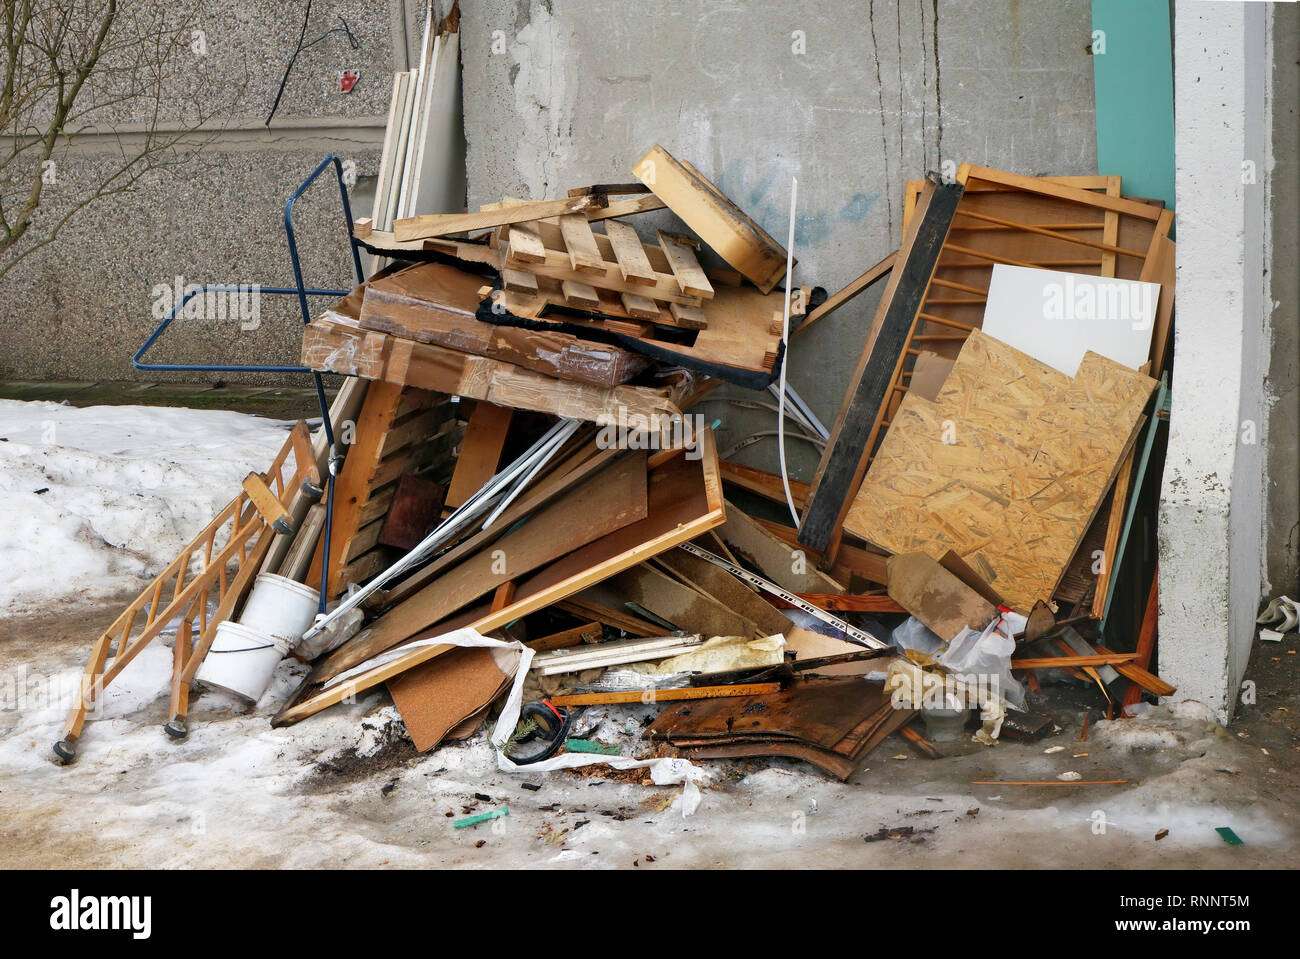 Boards and old furniture at the garbage dump near the